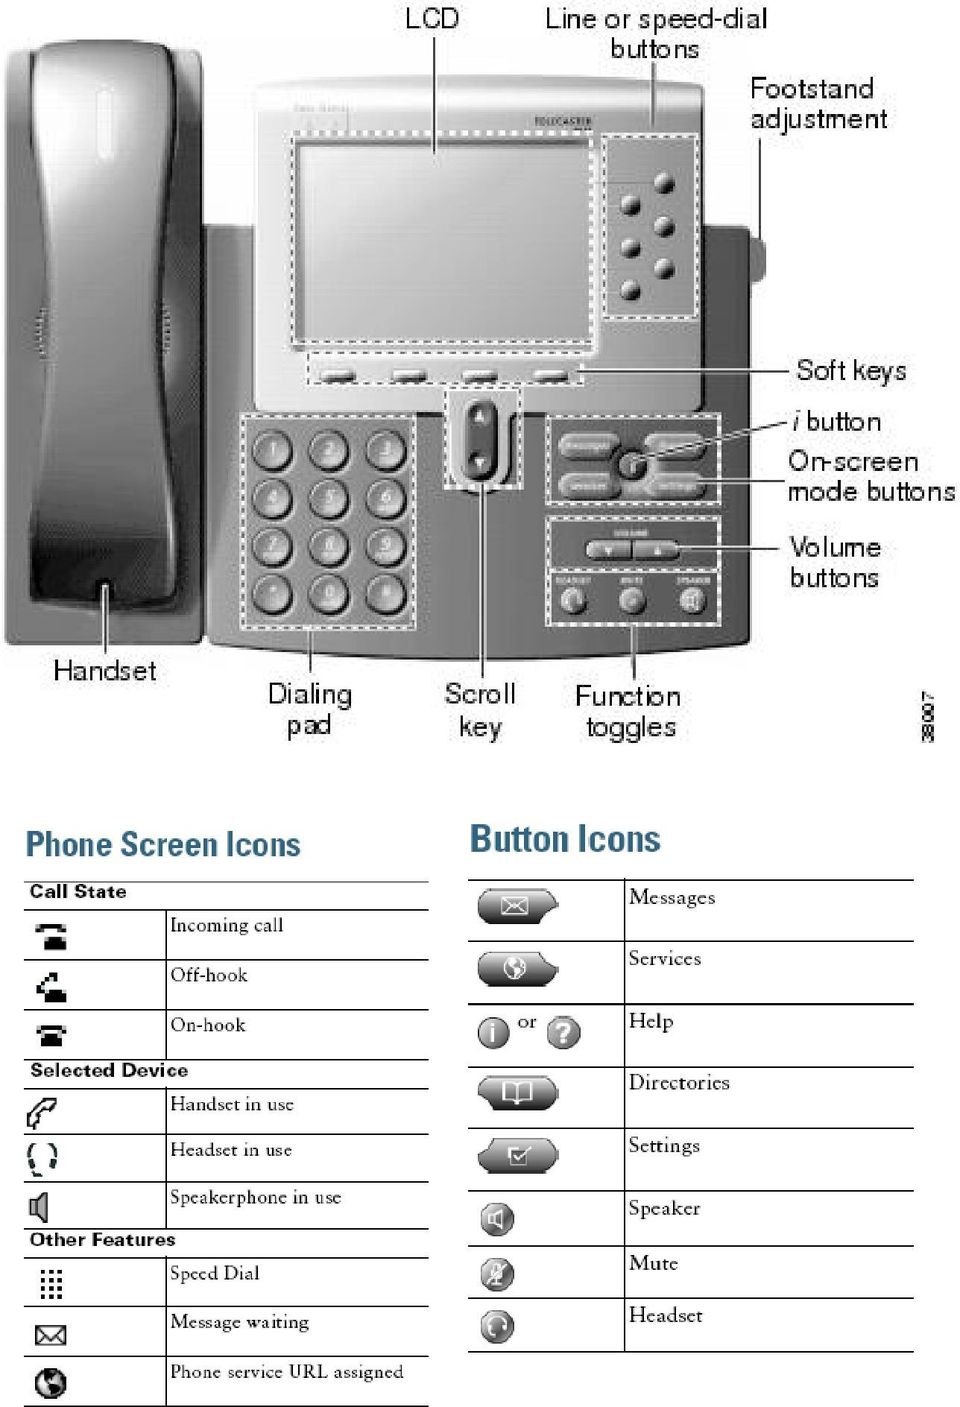 Cisco IP Phone 7960 / 7940 Quick Reference Guide - PDF